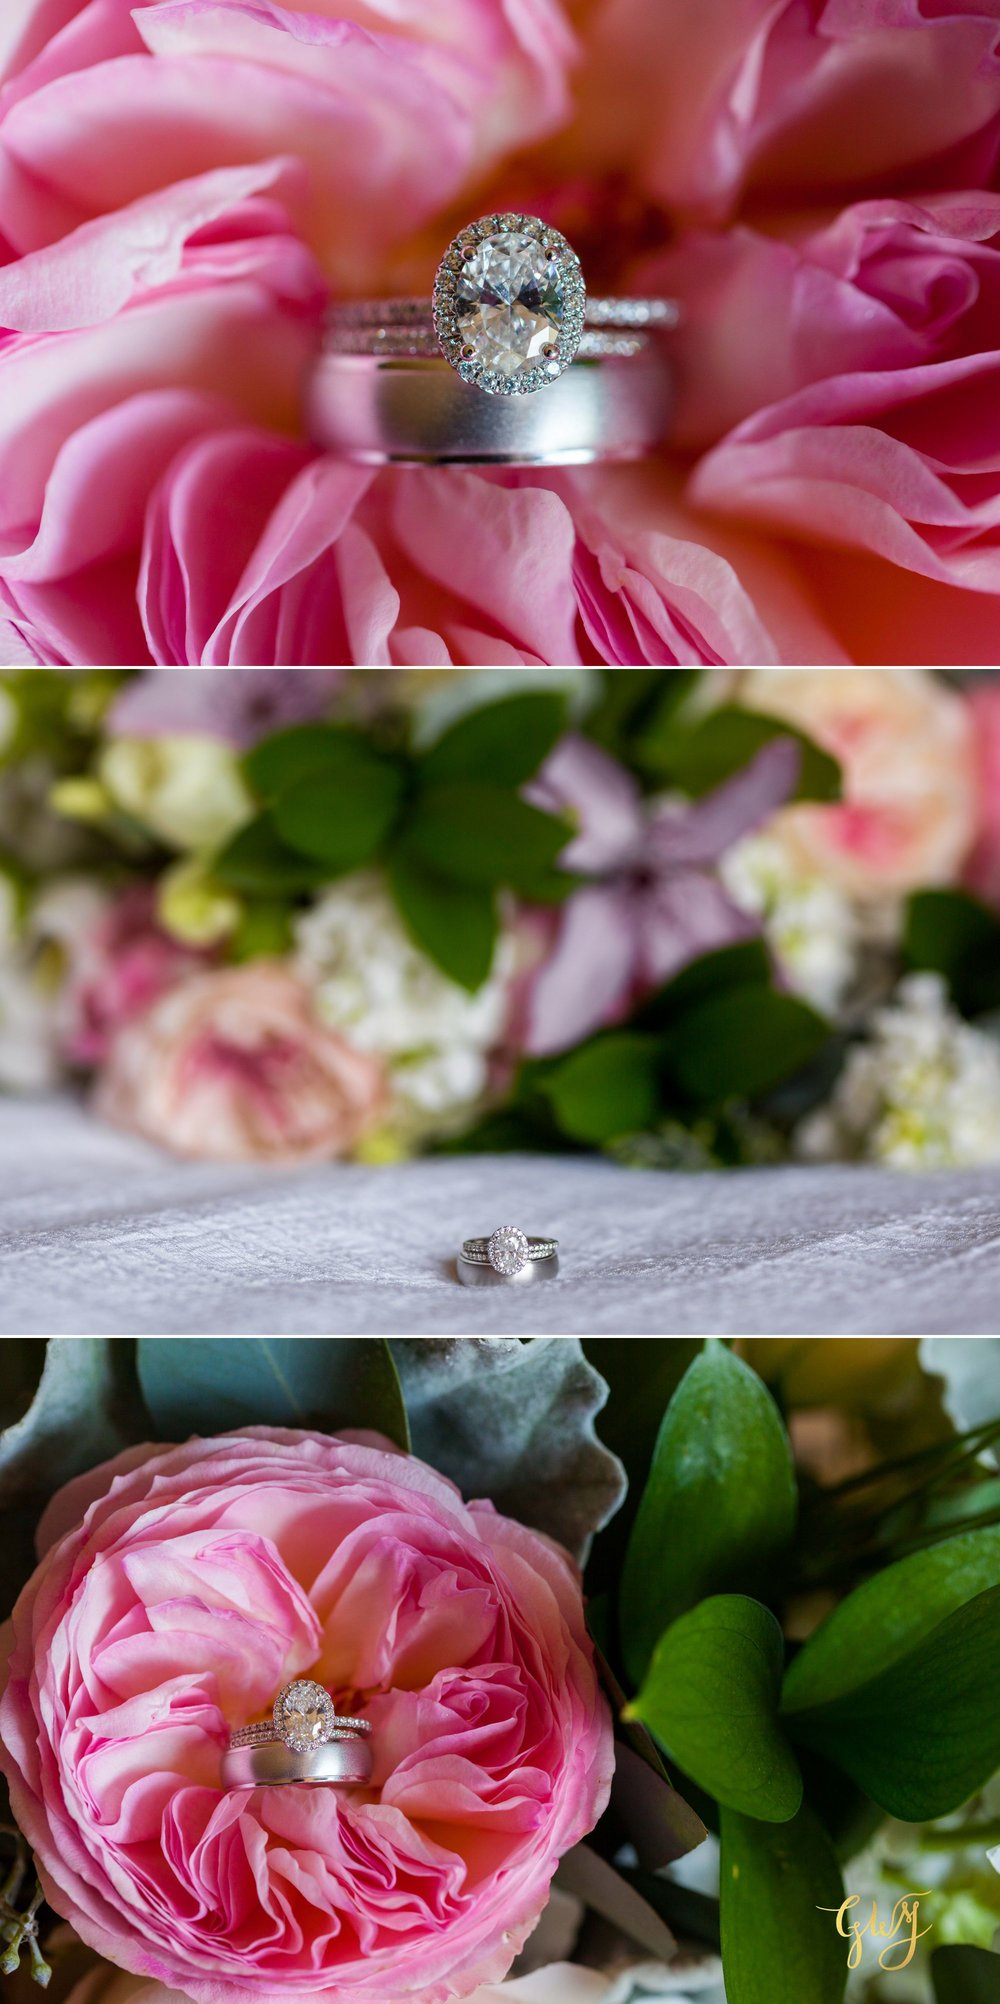 Javier + Kari Avenue of the Arts First Look Vintage Rose Wedding Ceremony Reception by Glass Woods Media 3.jpg